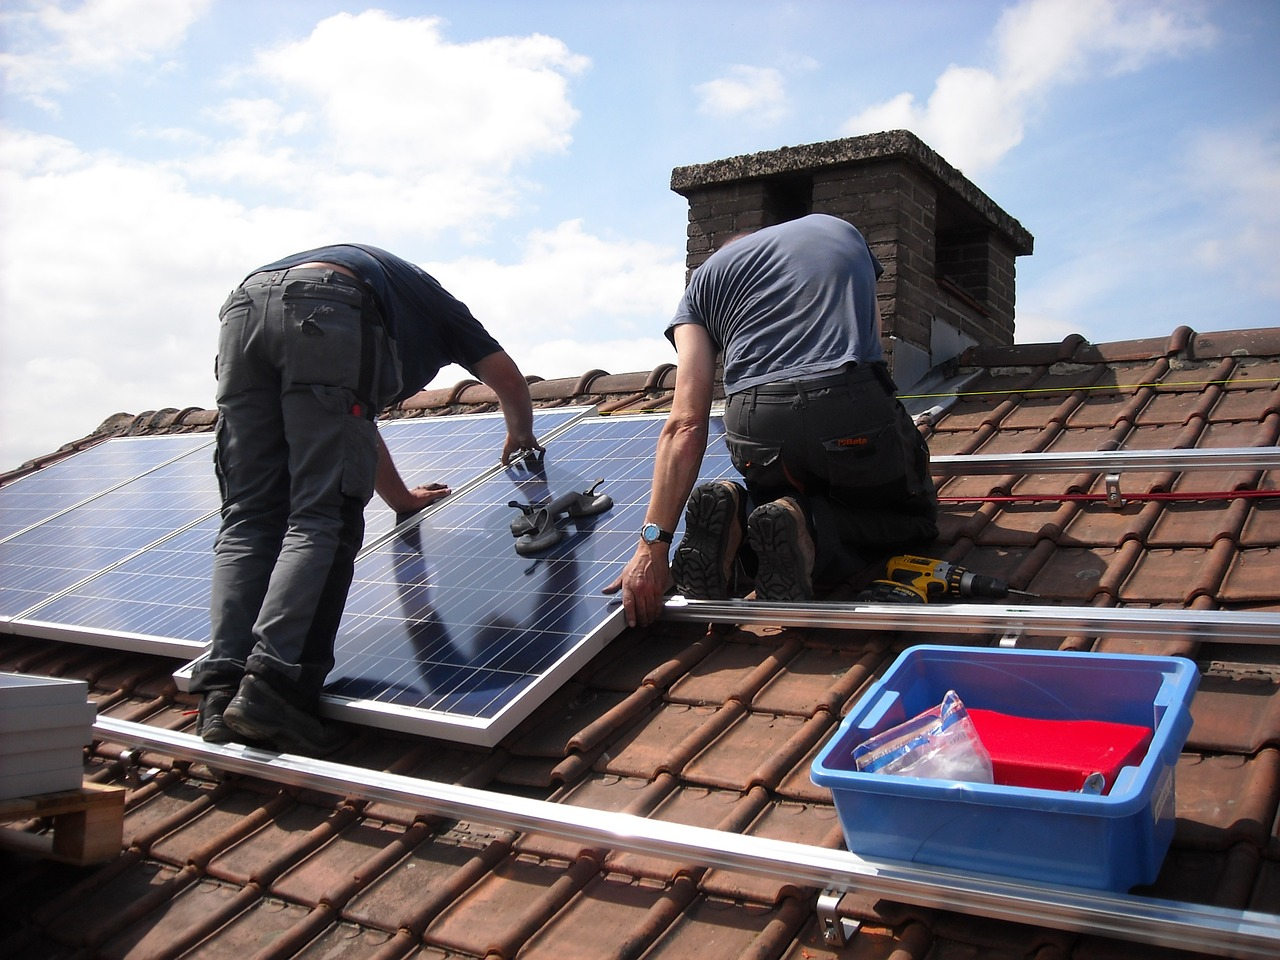 What effects will tariffs have on imported solar panels?